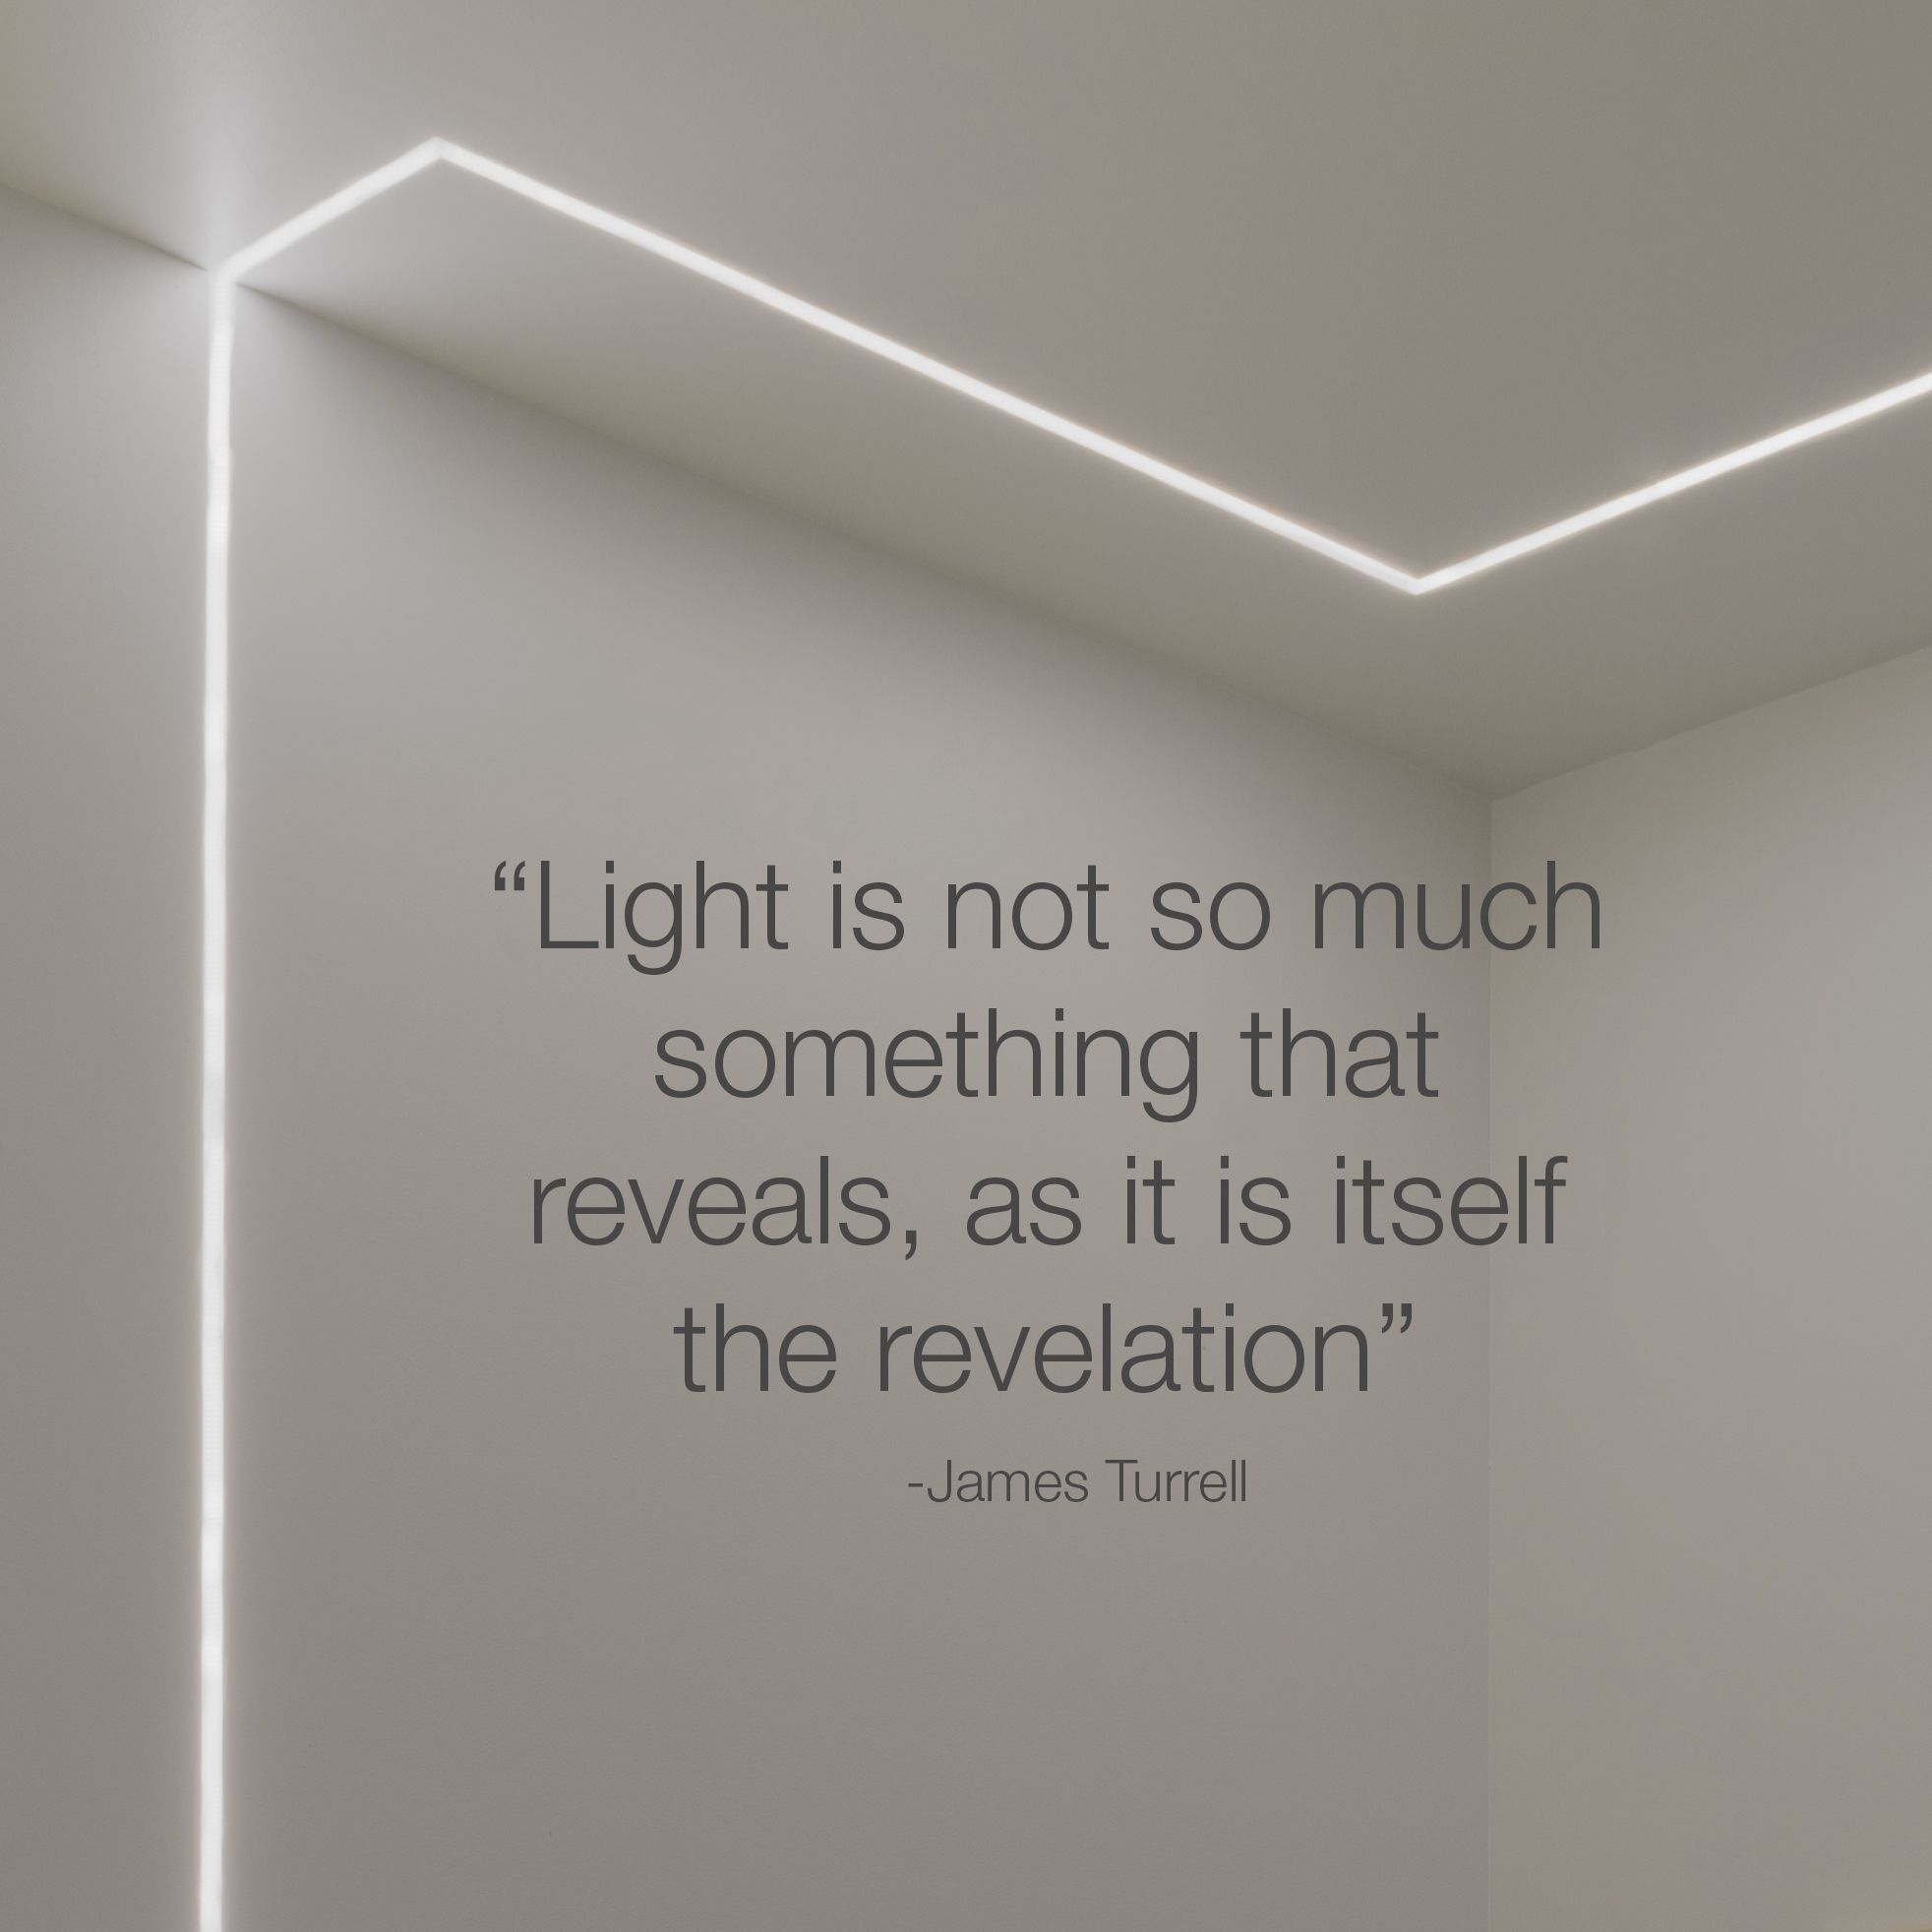 light is not so much something that reveals as it is itself the